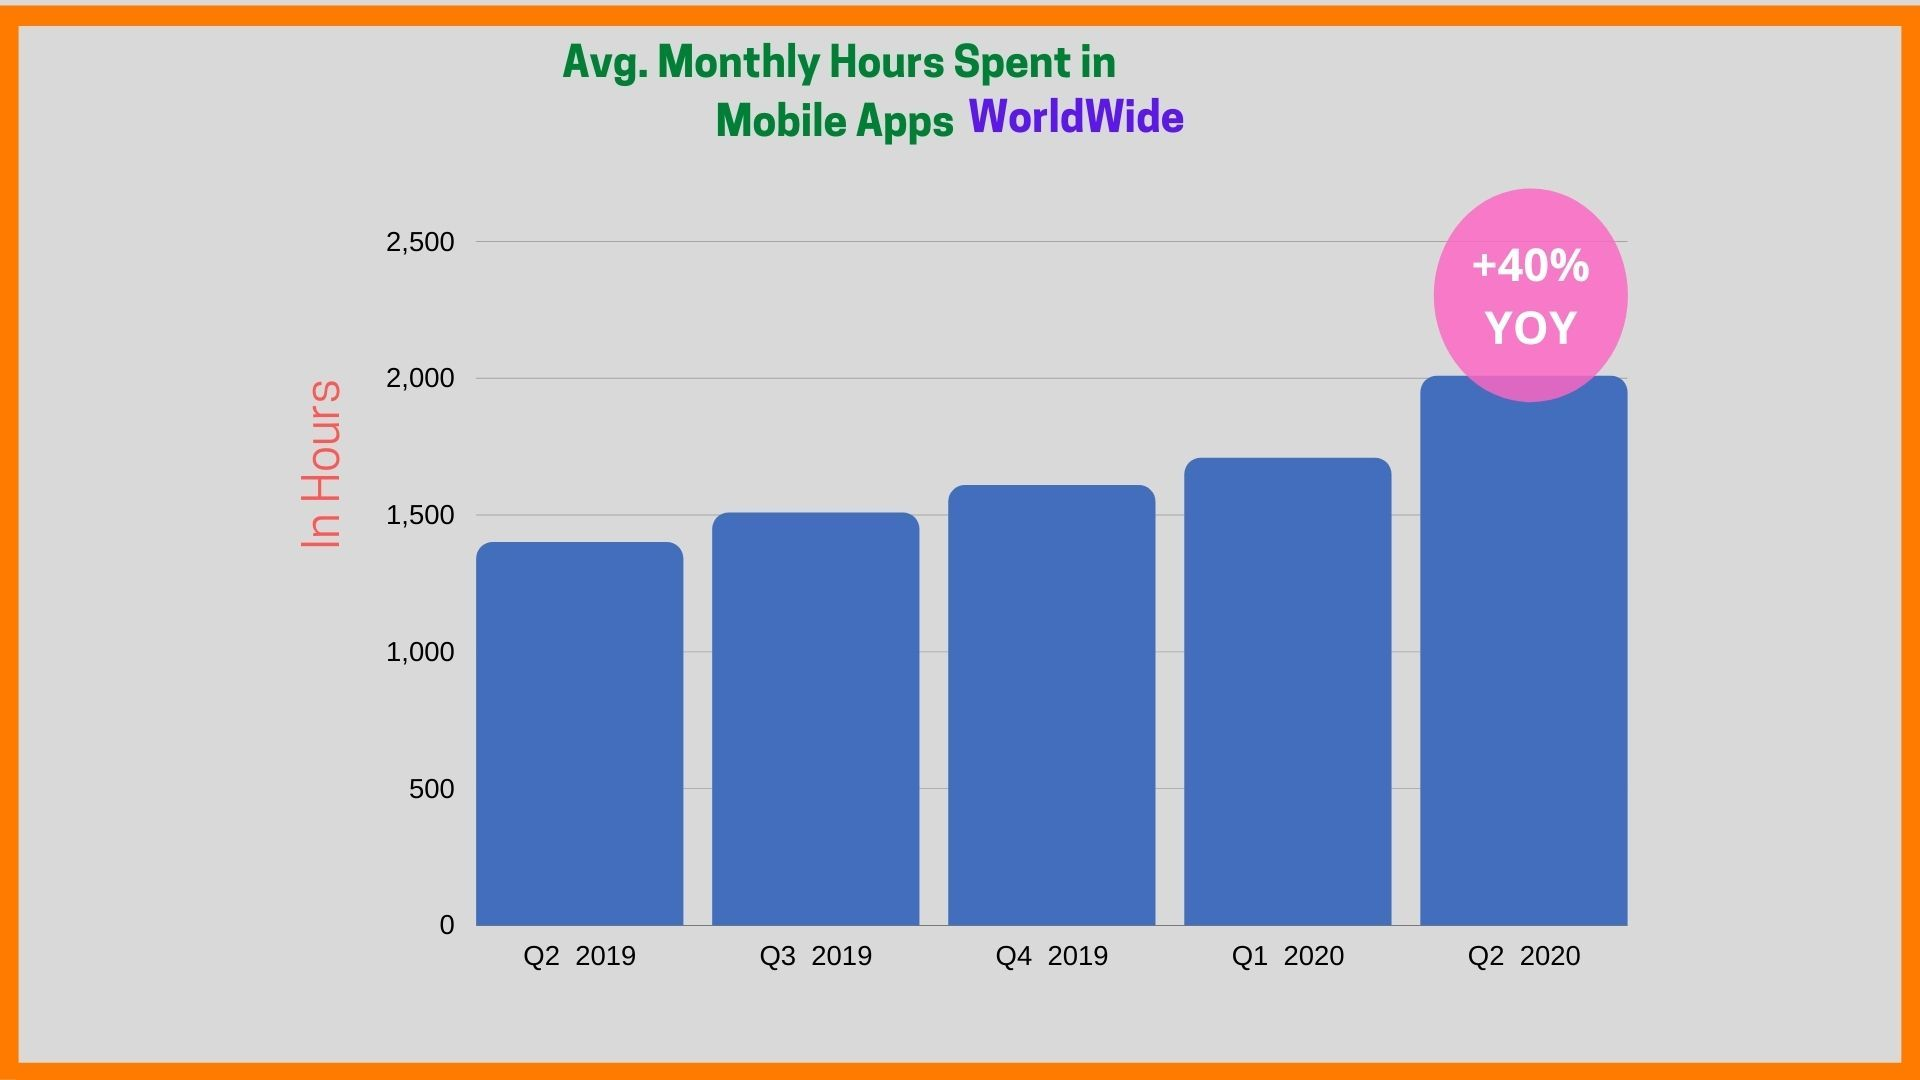 Average Monthly Hours Spent